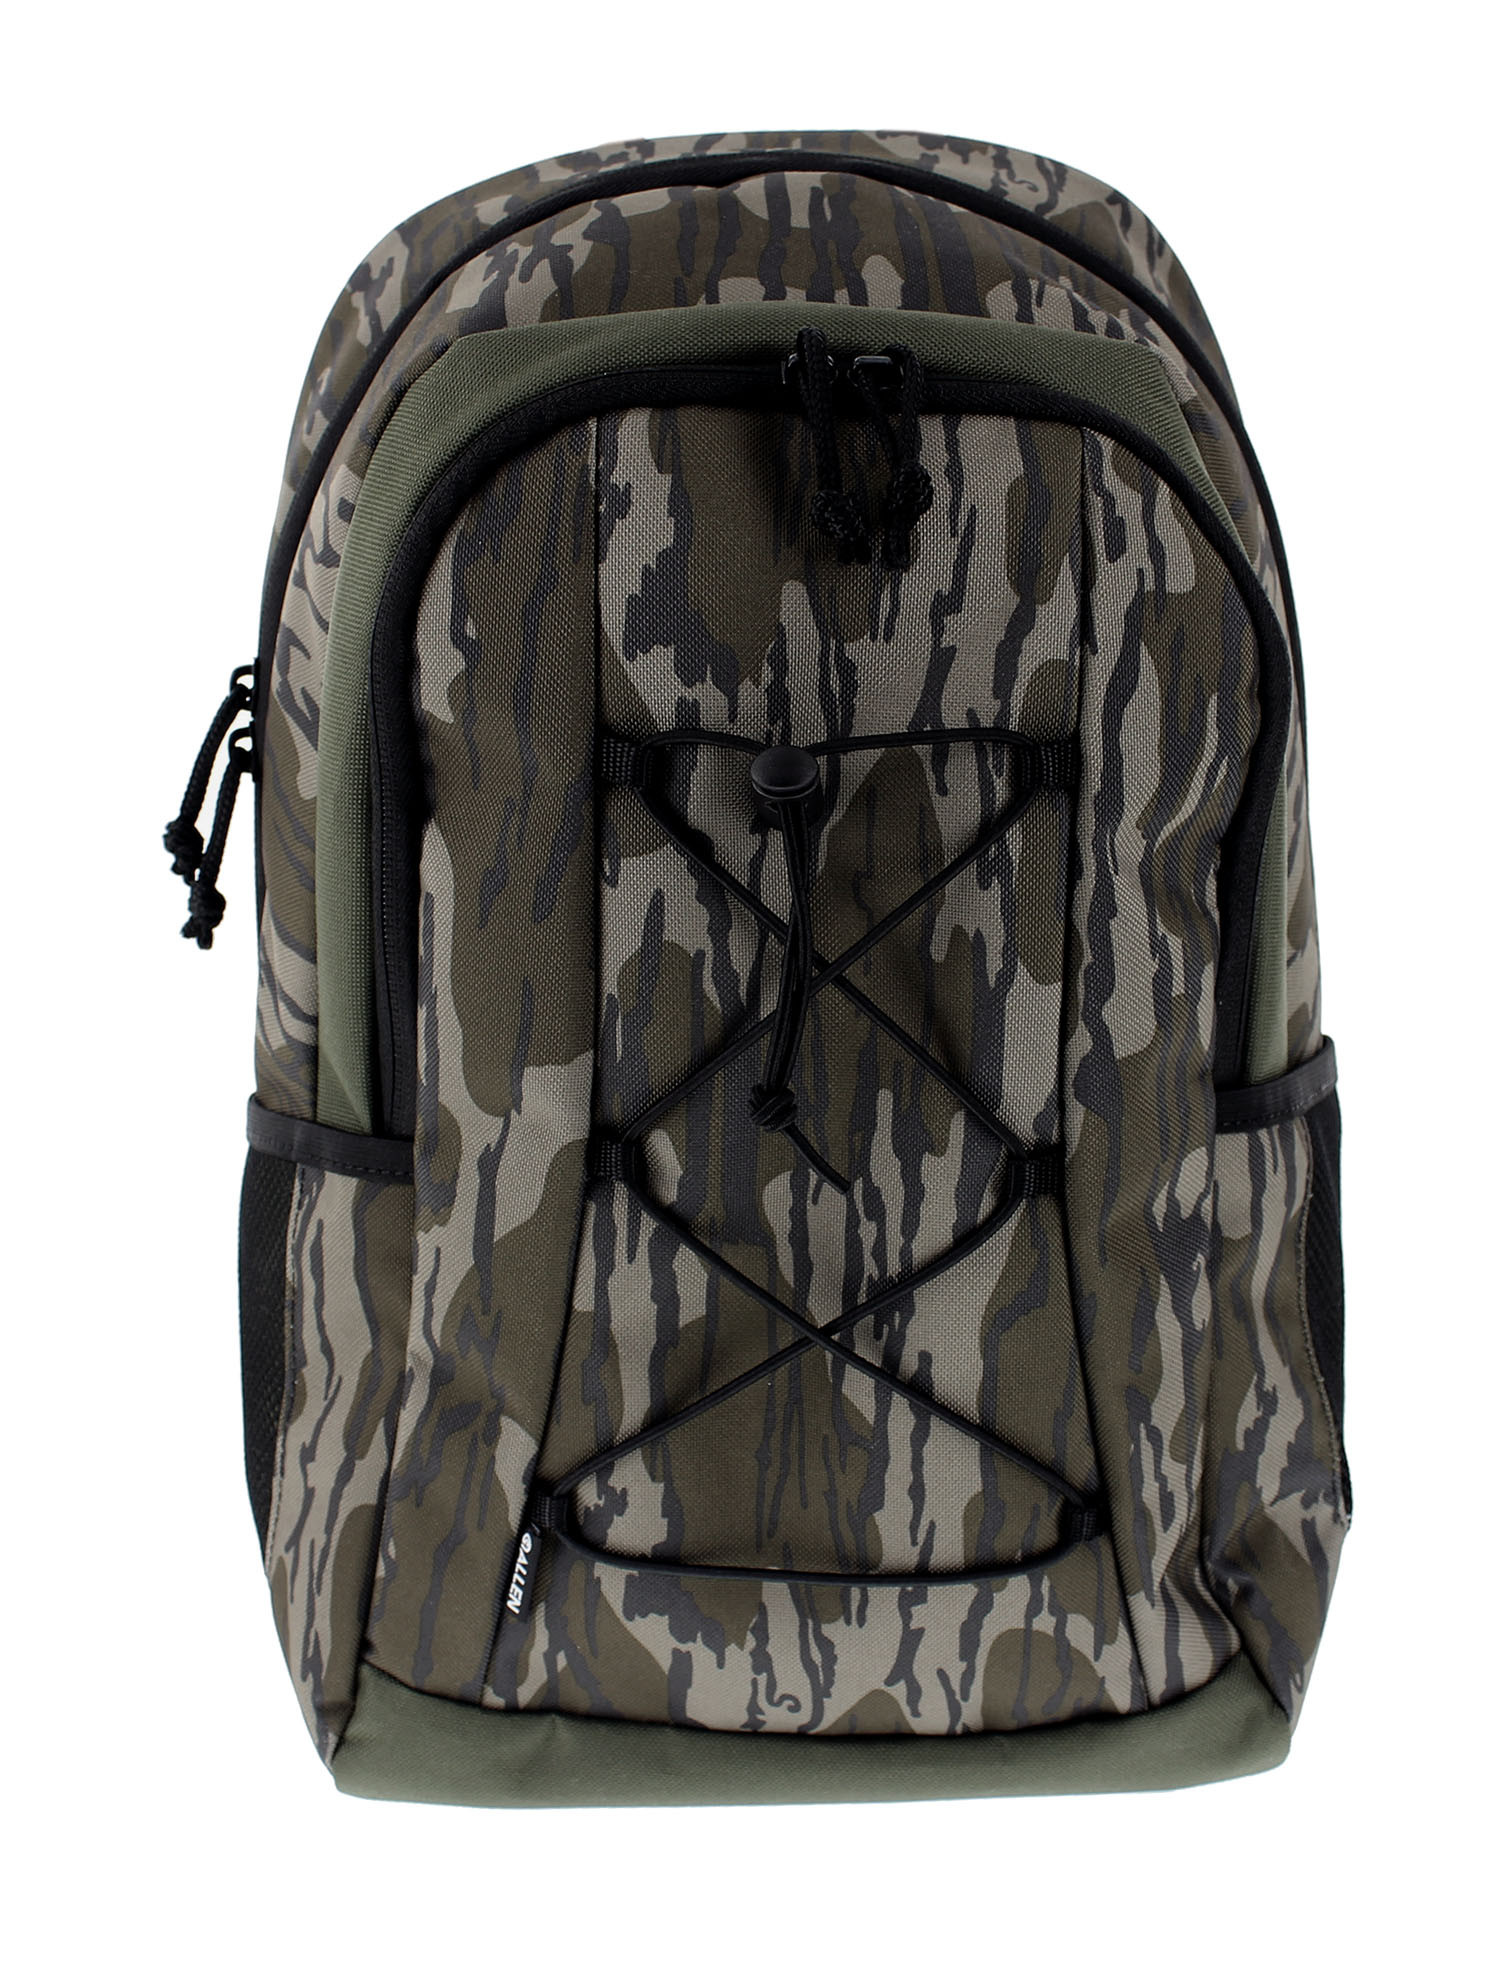 NATCHEZ EXCLUSIVE Allen Sequatchee Timber Raider Day Pack